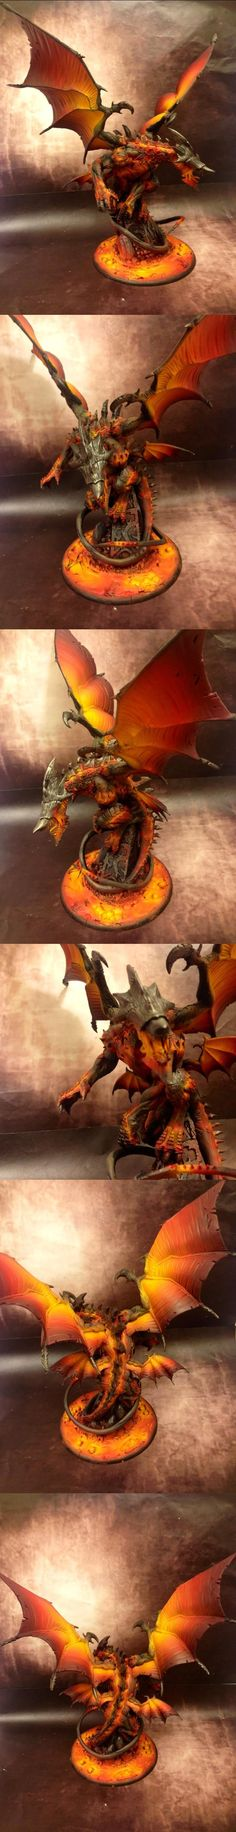 Aosol, Dragon, Everblight, Hordes, Lava, Legion Of Everblight, Object Source Lighting